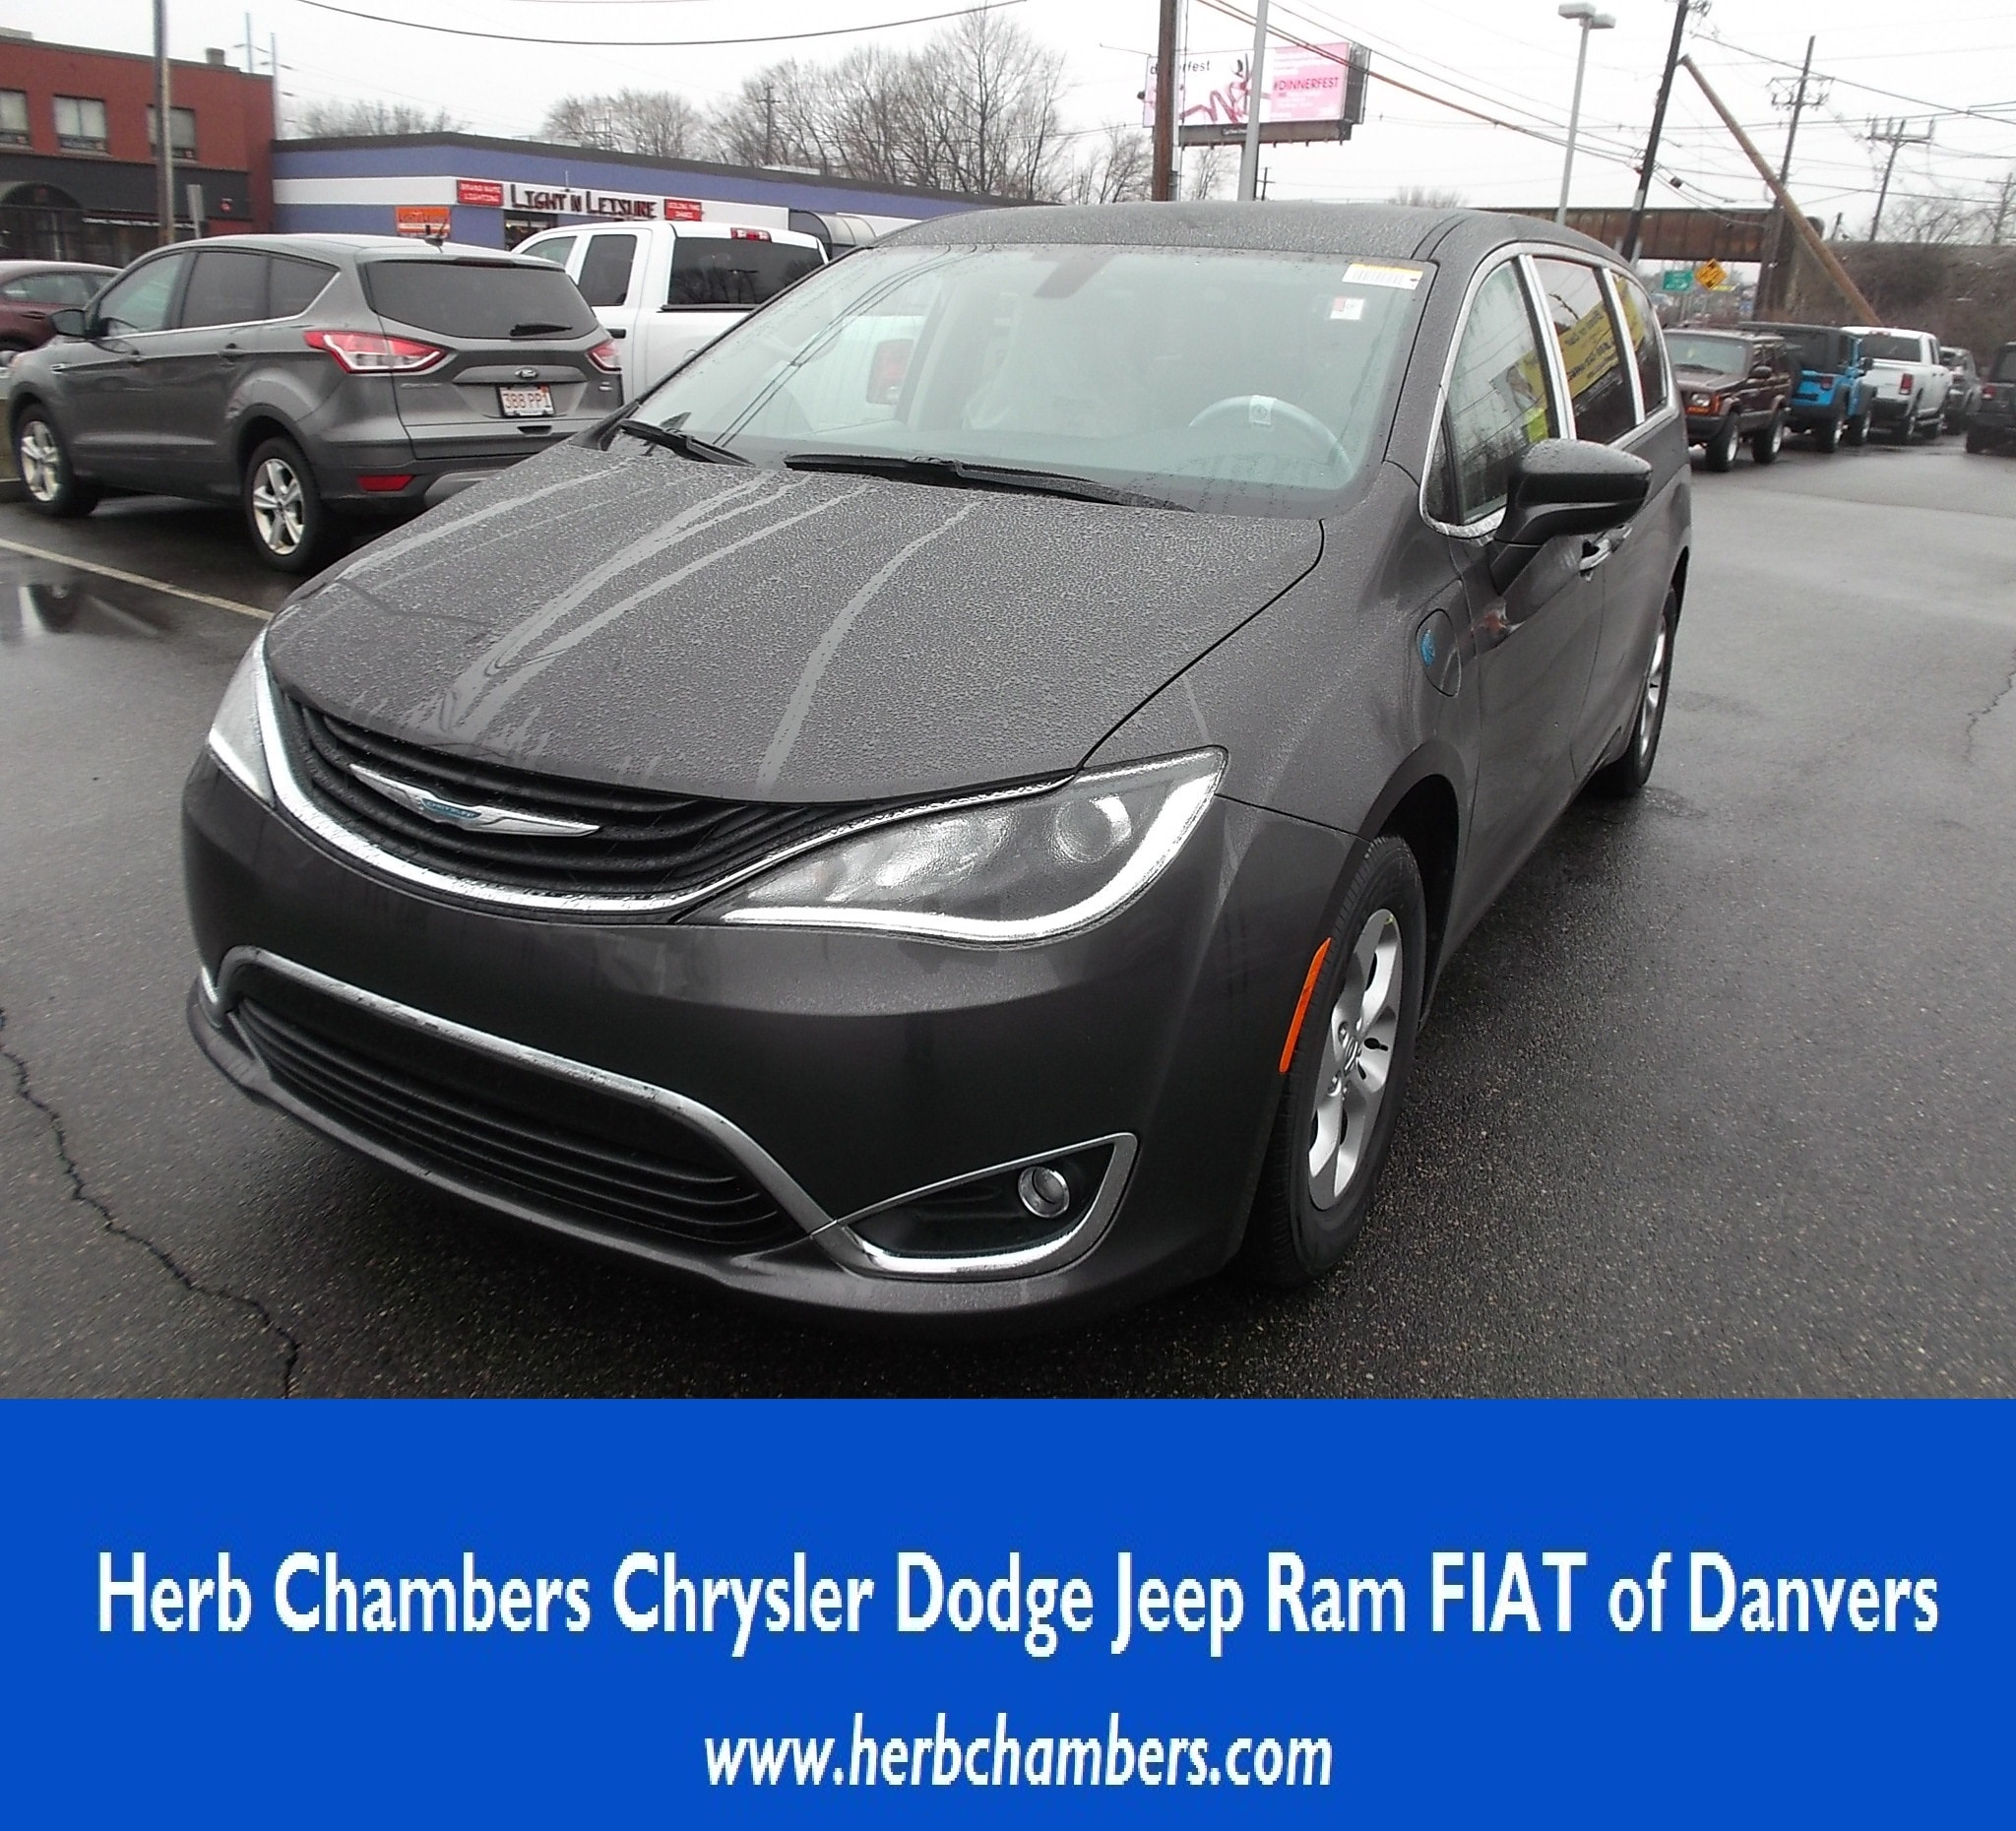 Herb Chambers Chrysler Dodge Jeep RAM